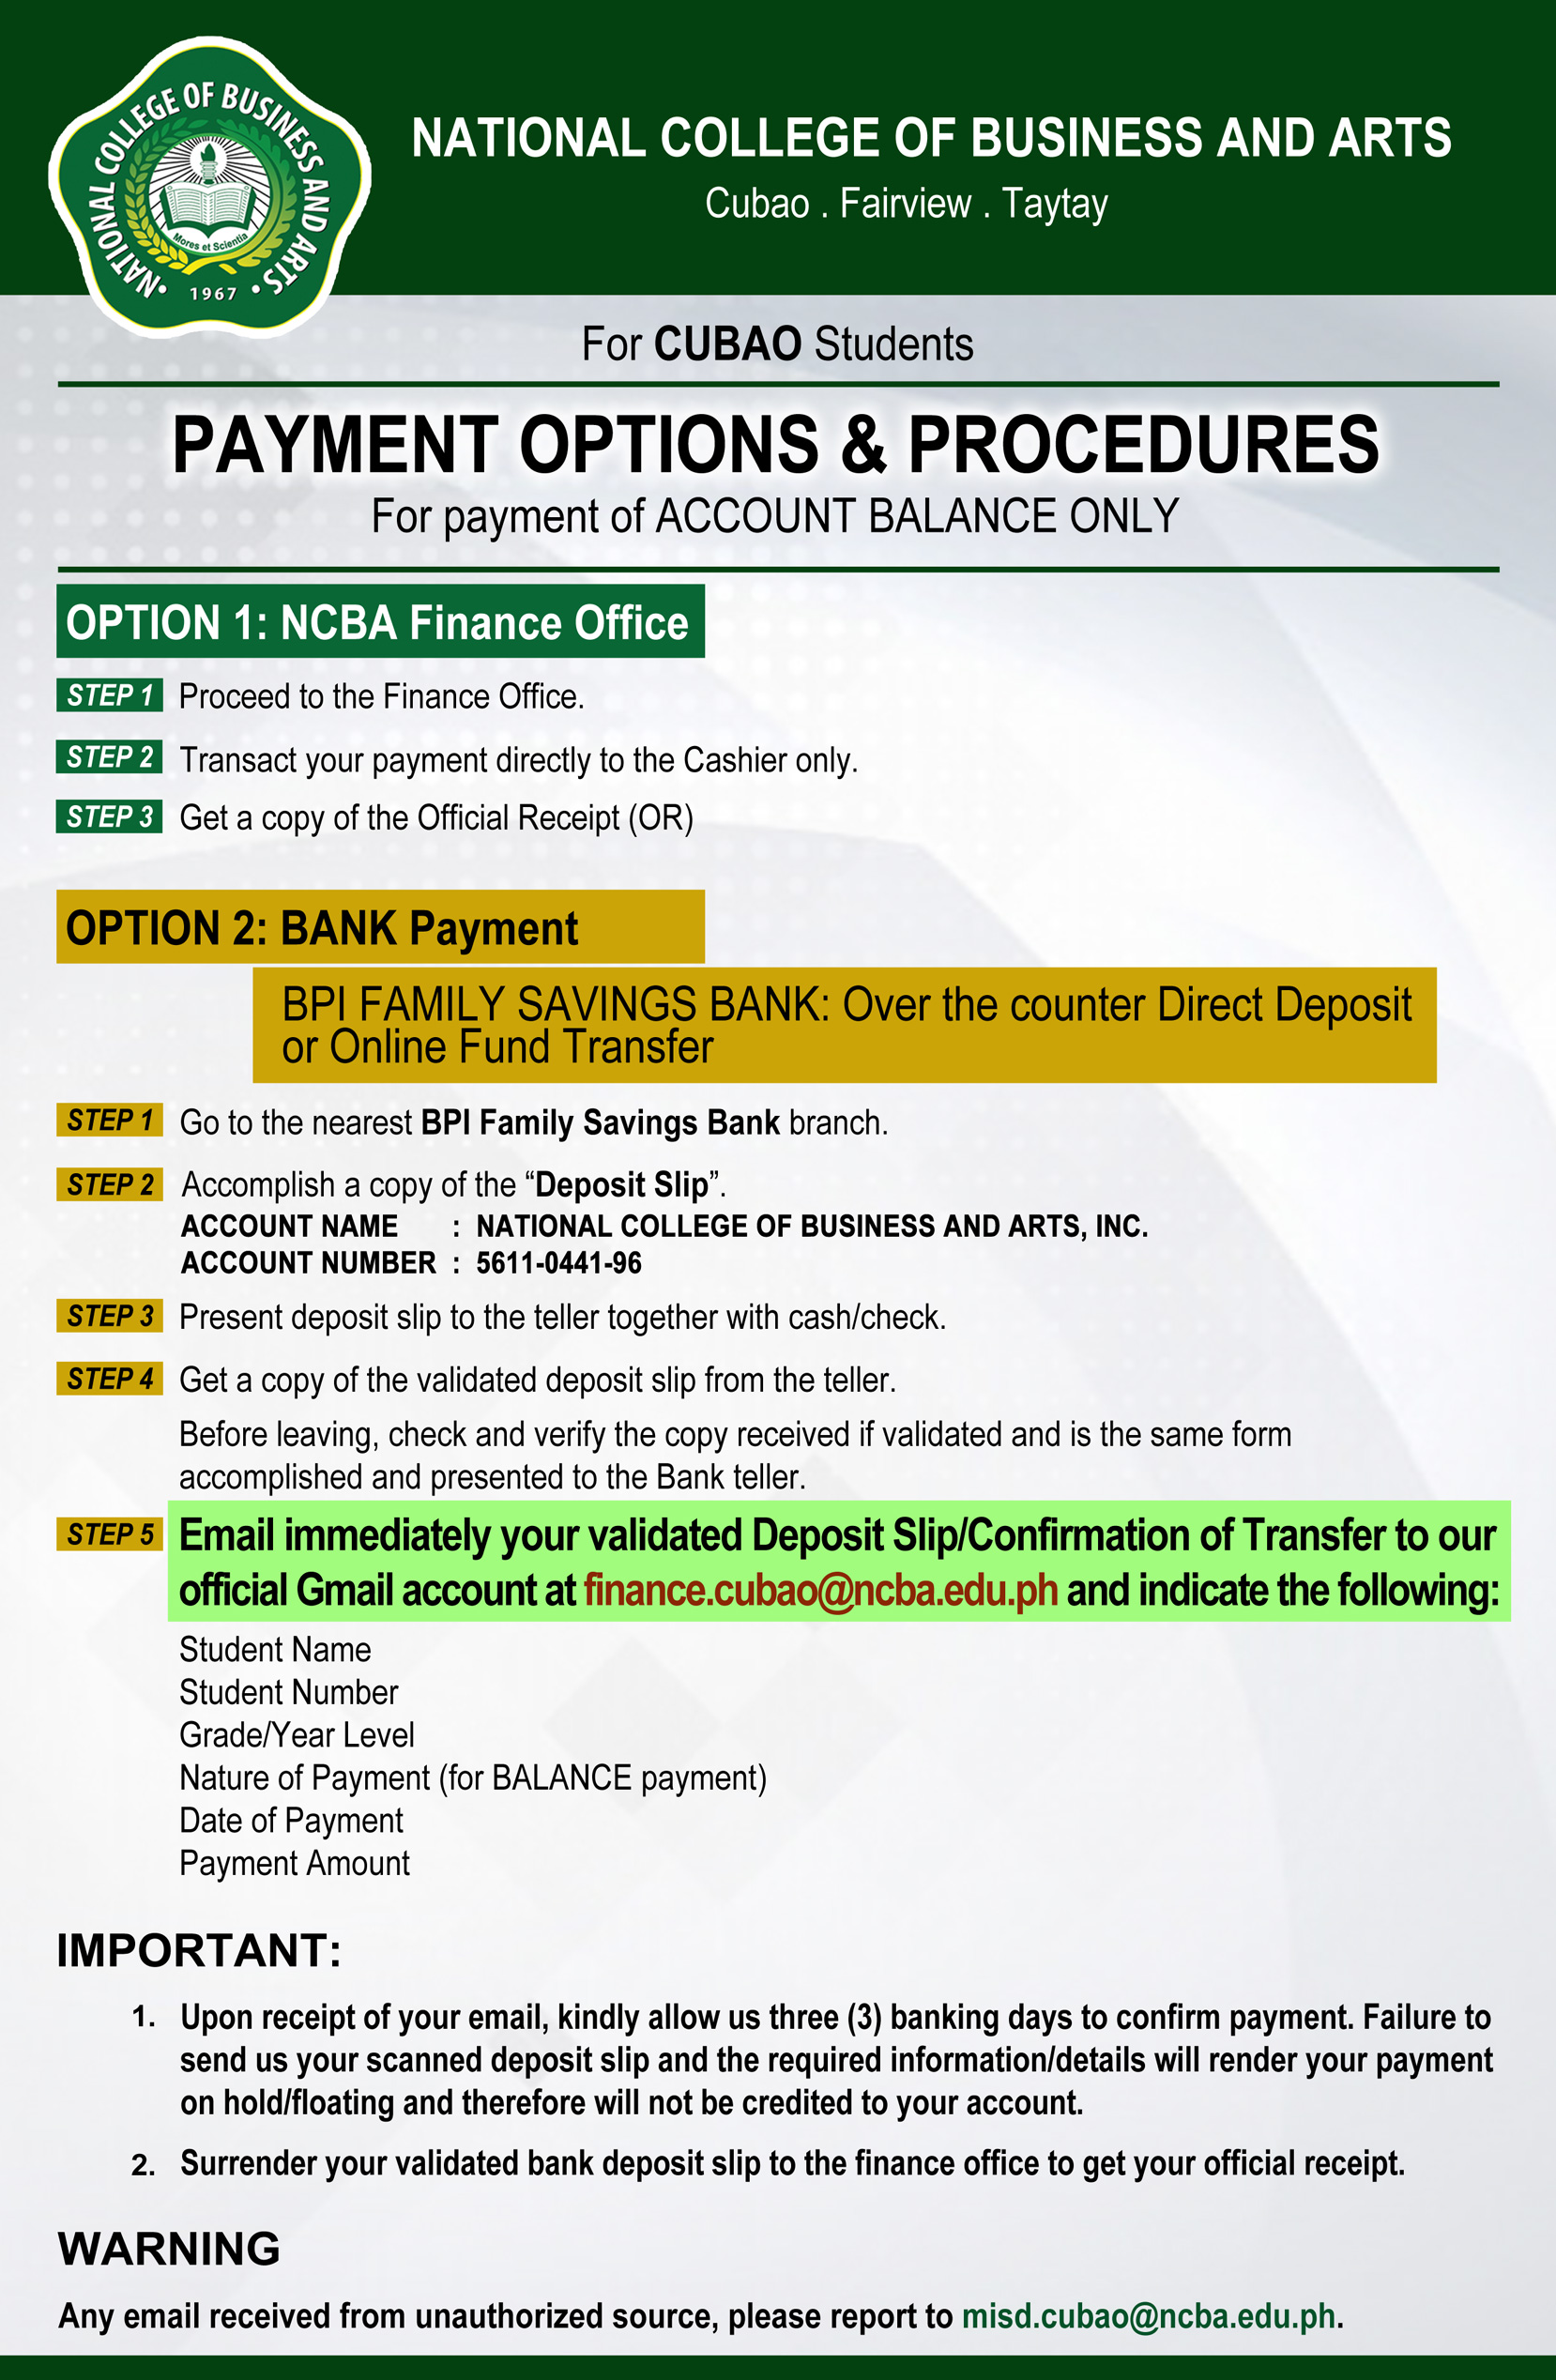 Payment Options for Account Balance - Cubao